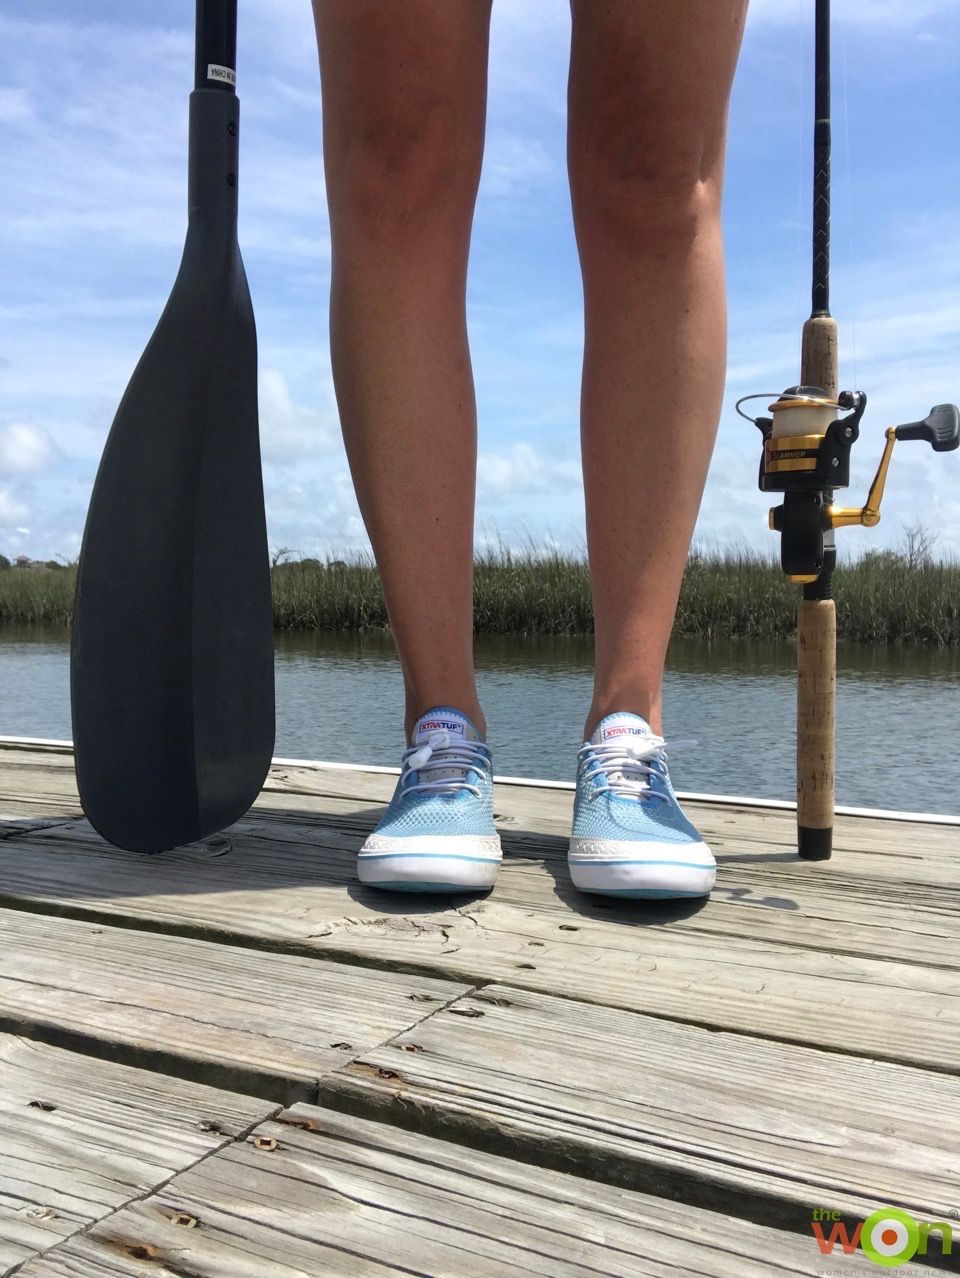 2d9a0ab4f633 Review  XTRATUF Riptide Water Shoe vs. Sneakers on a Paddle Board ...